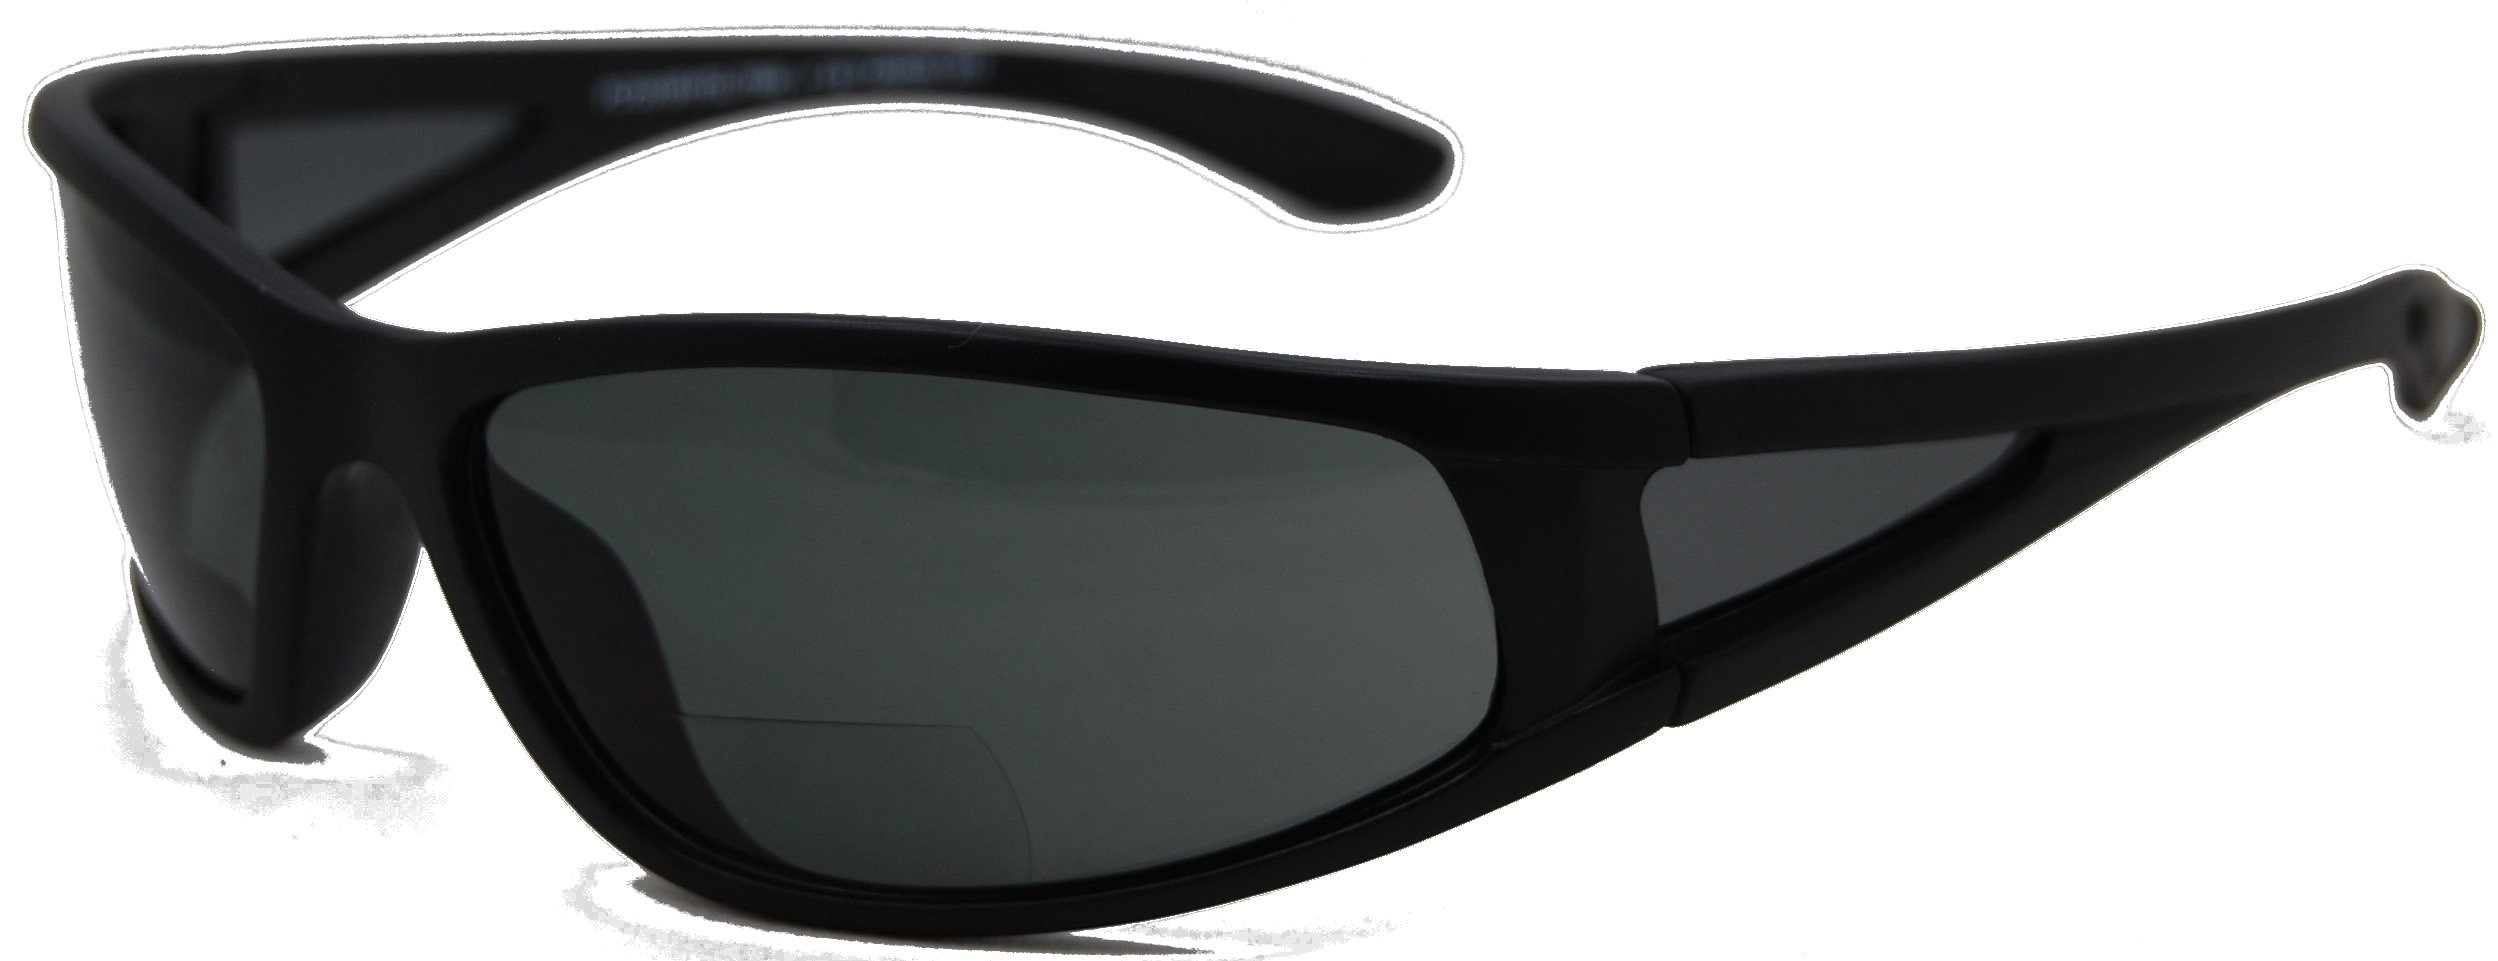 In Style Eyes Del Mar Polarized Wrap Nearly Invisible Line Bifocal Sunglass Readers/Matte Black/2.50 Strength by Style Eyes